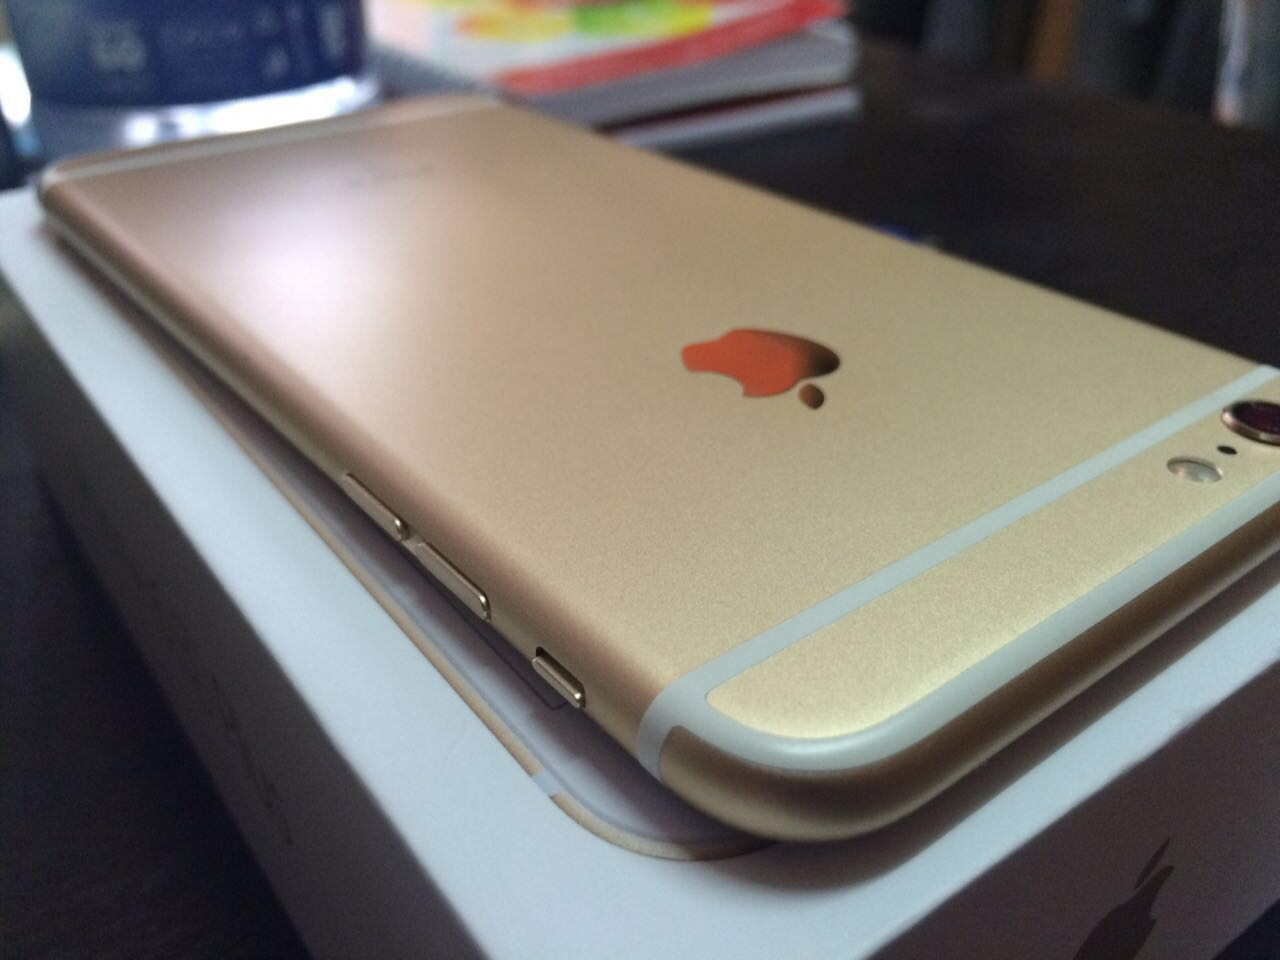 Nairobimail Iphone 6s Plus 64gb Hp No Finger Gold Apple 1month Used Sealed Accessories Very Clean Pc With Case 0736638332